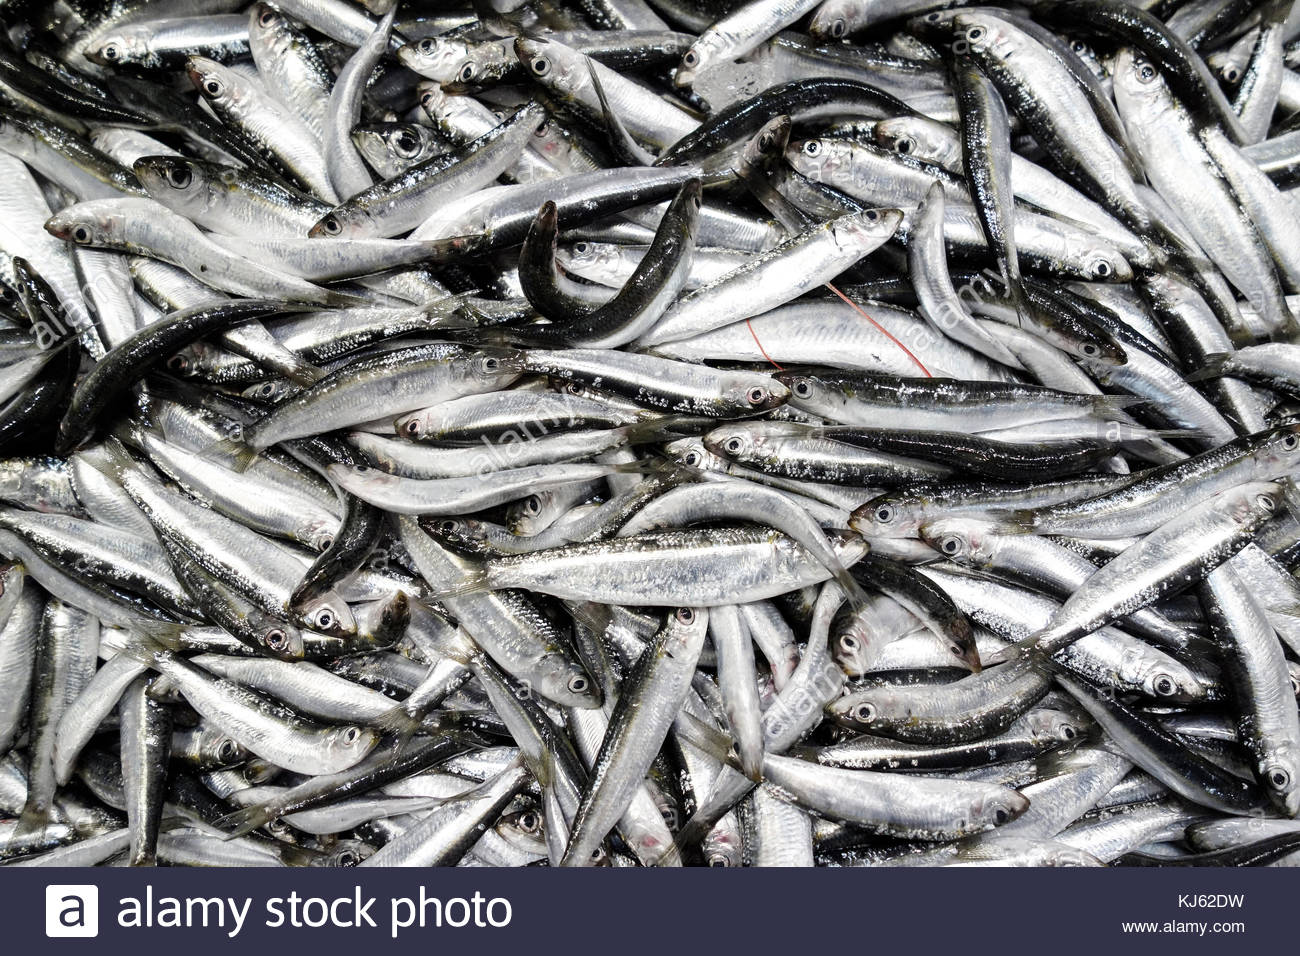 Herring on market stall table, top view - Stock Image